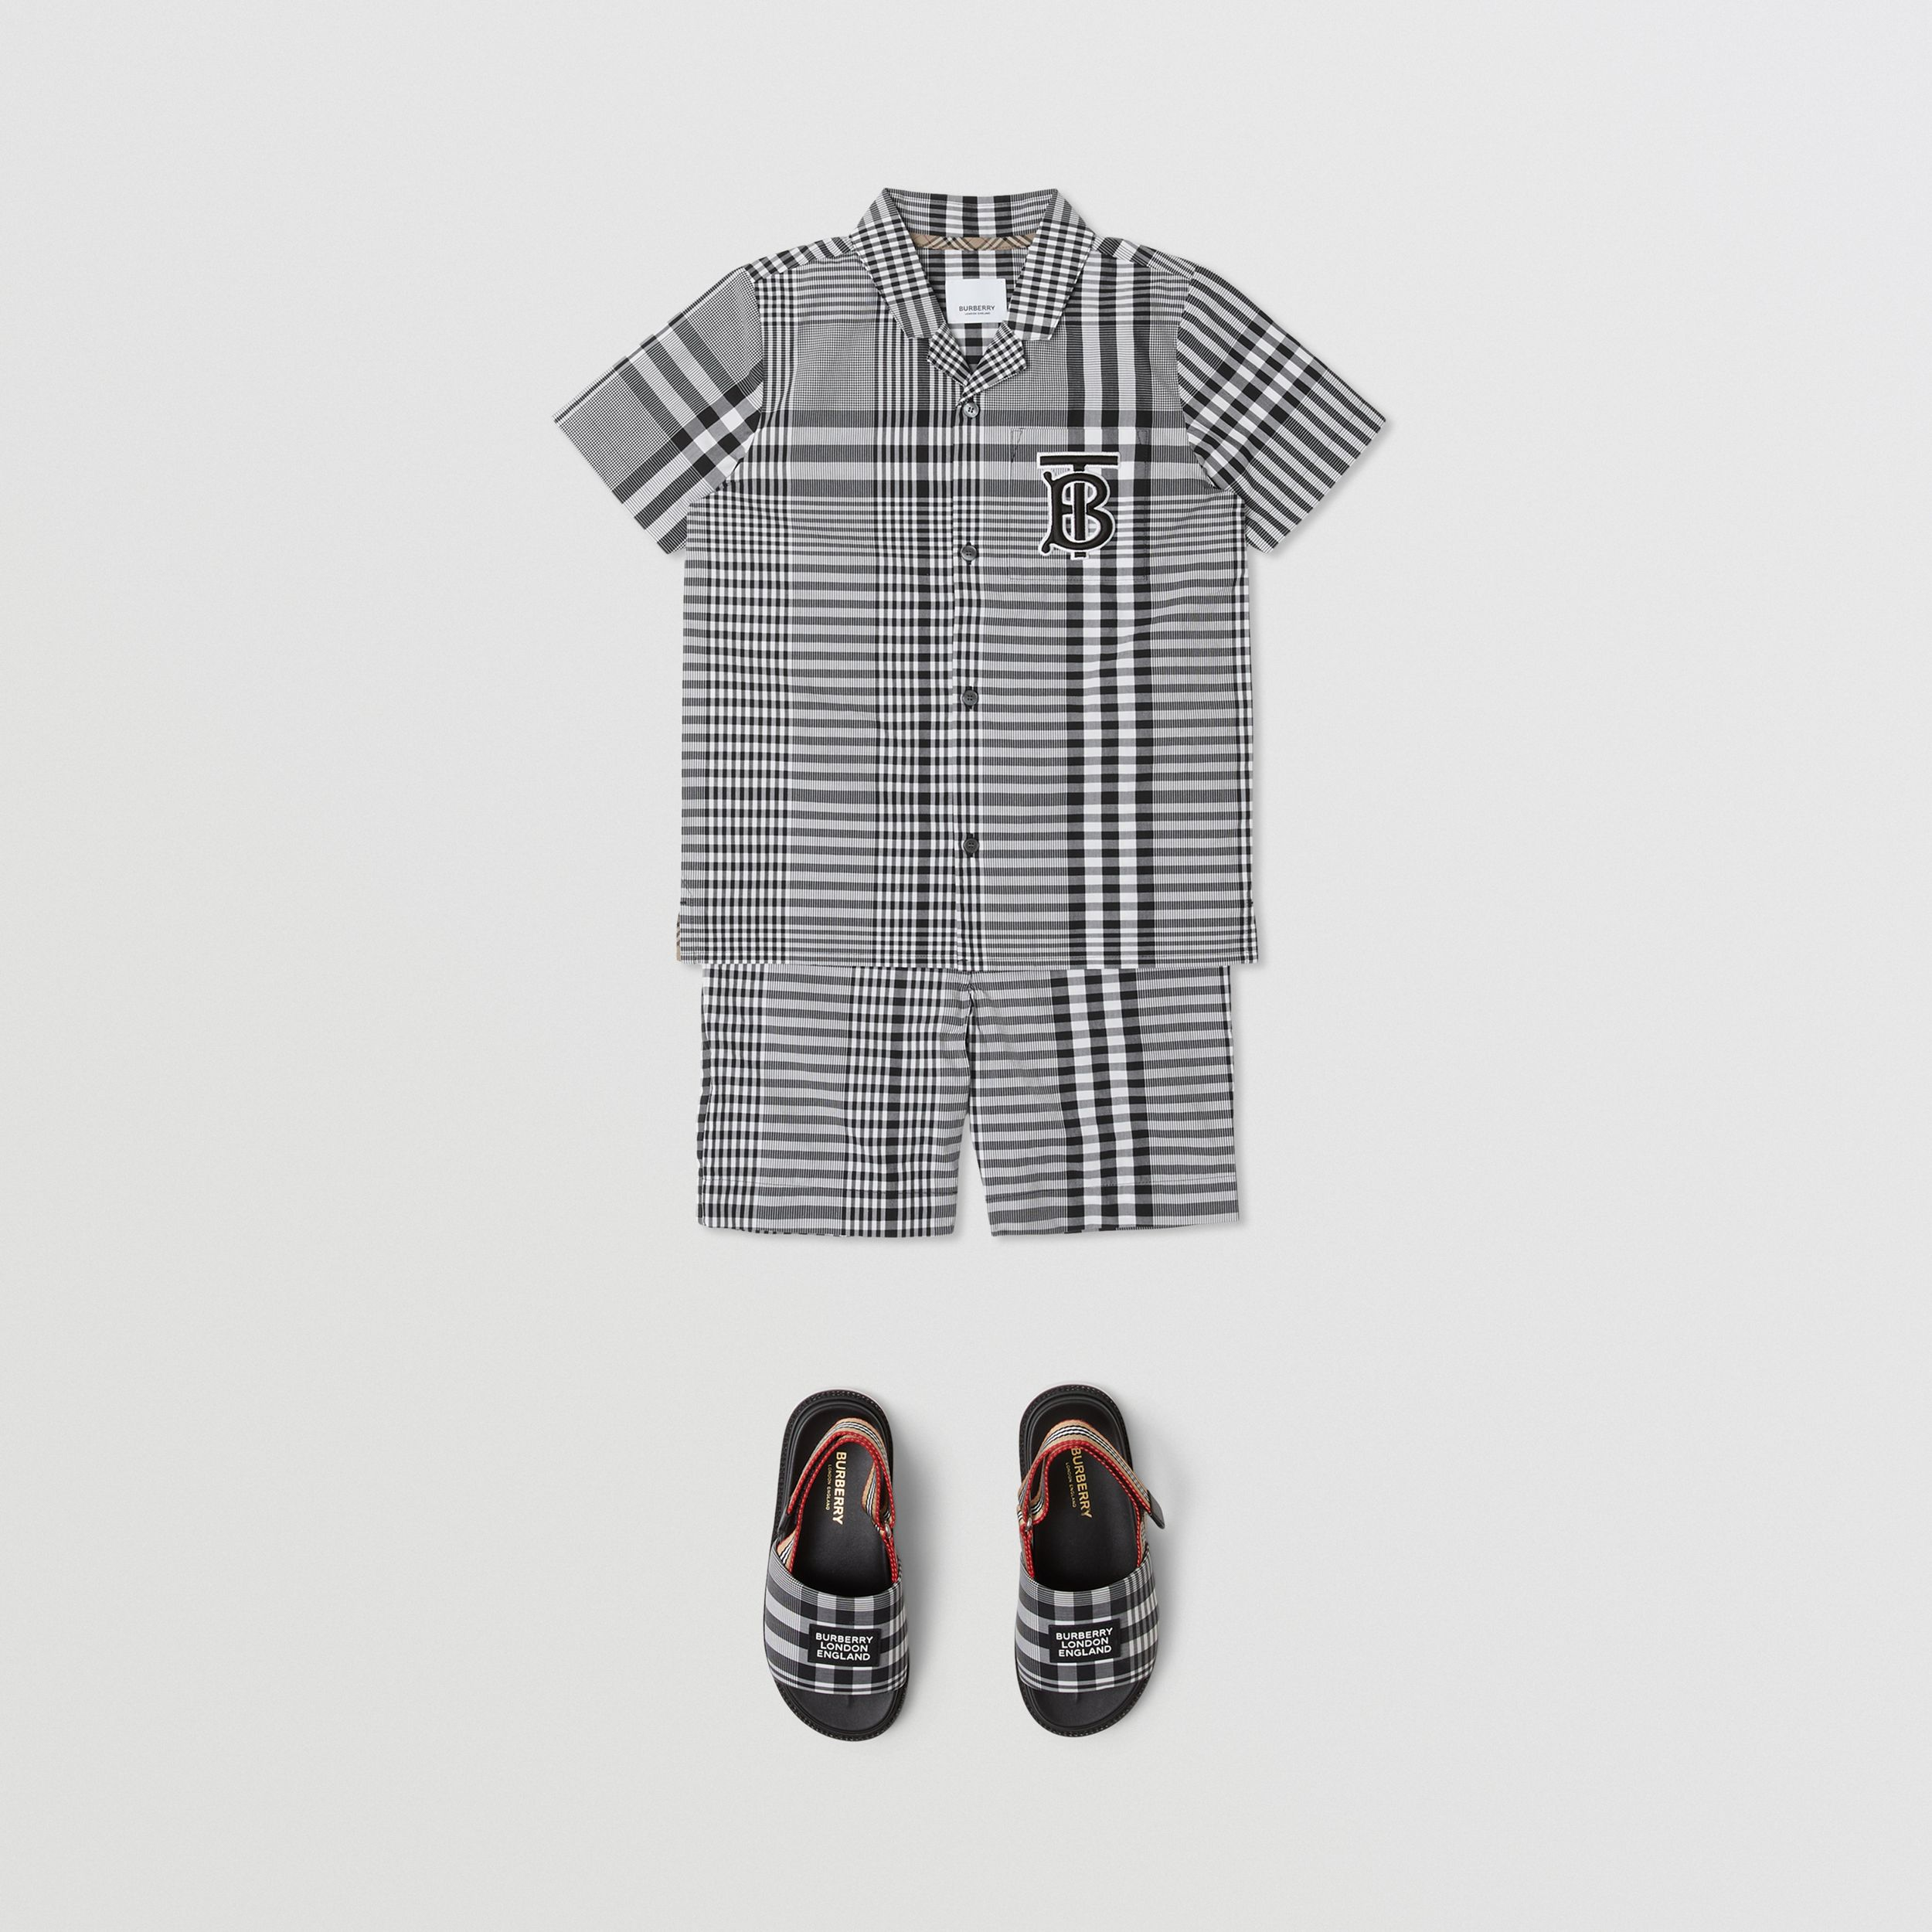 Short-sleeve Monogram Motif Check Cotton Shirt in Black | Burberry - 3